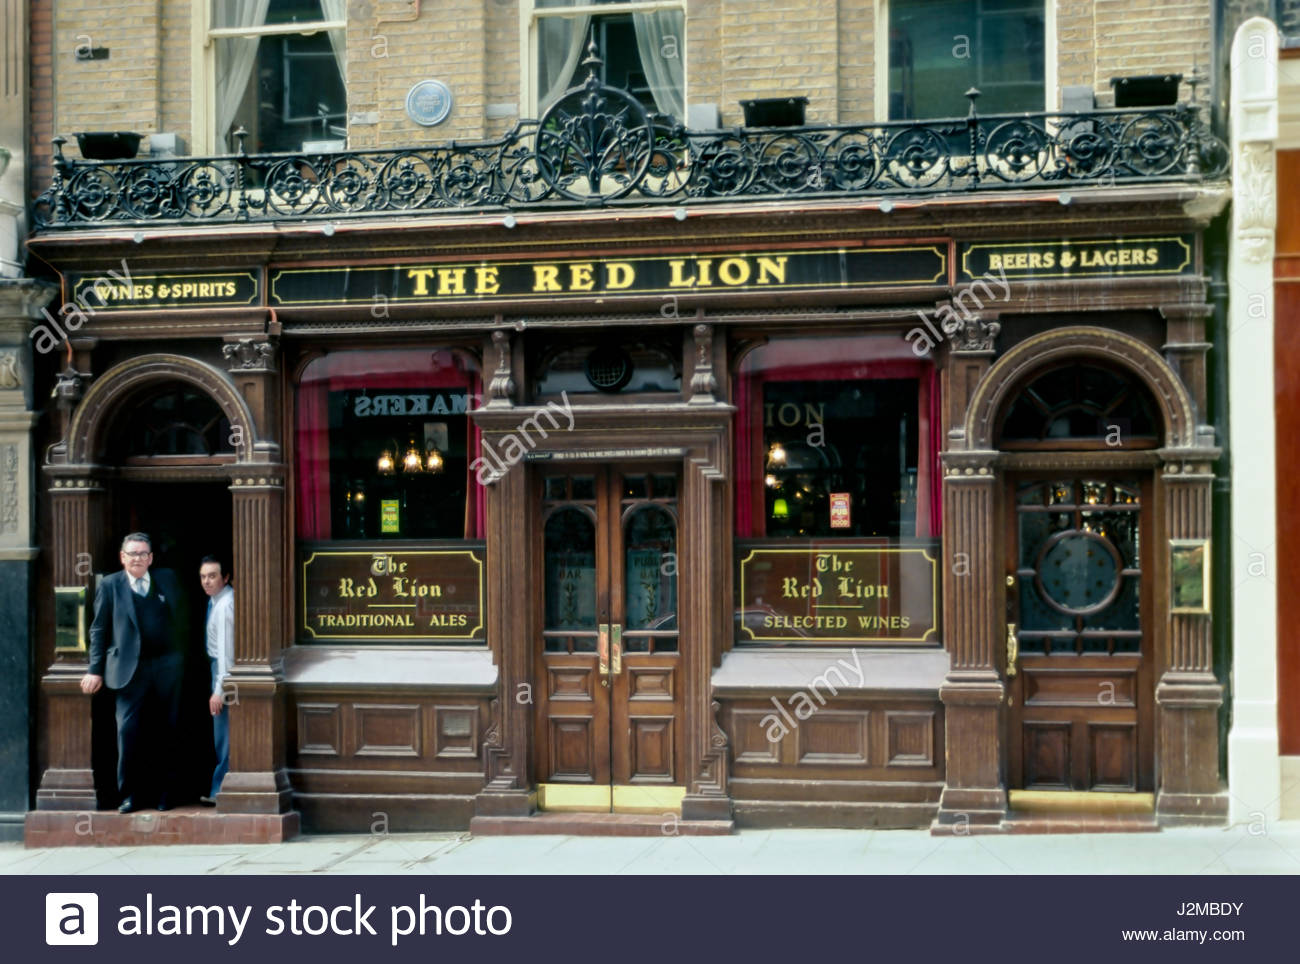 Duke of York, St. James's, London, England, United Kingdom. Two men standing in the doorway under the sign for - Stock Image